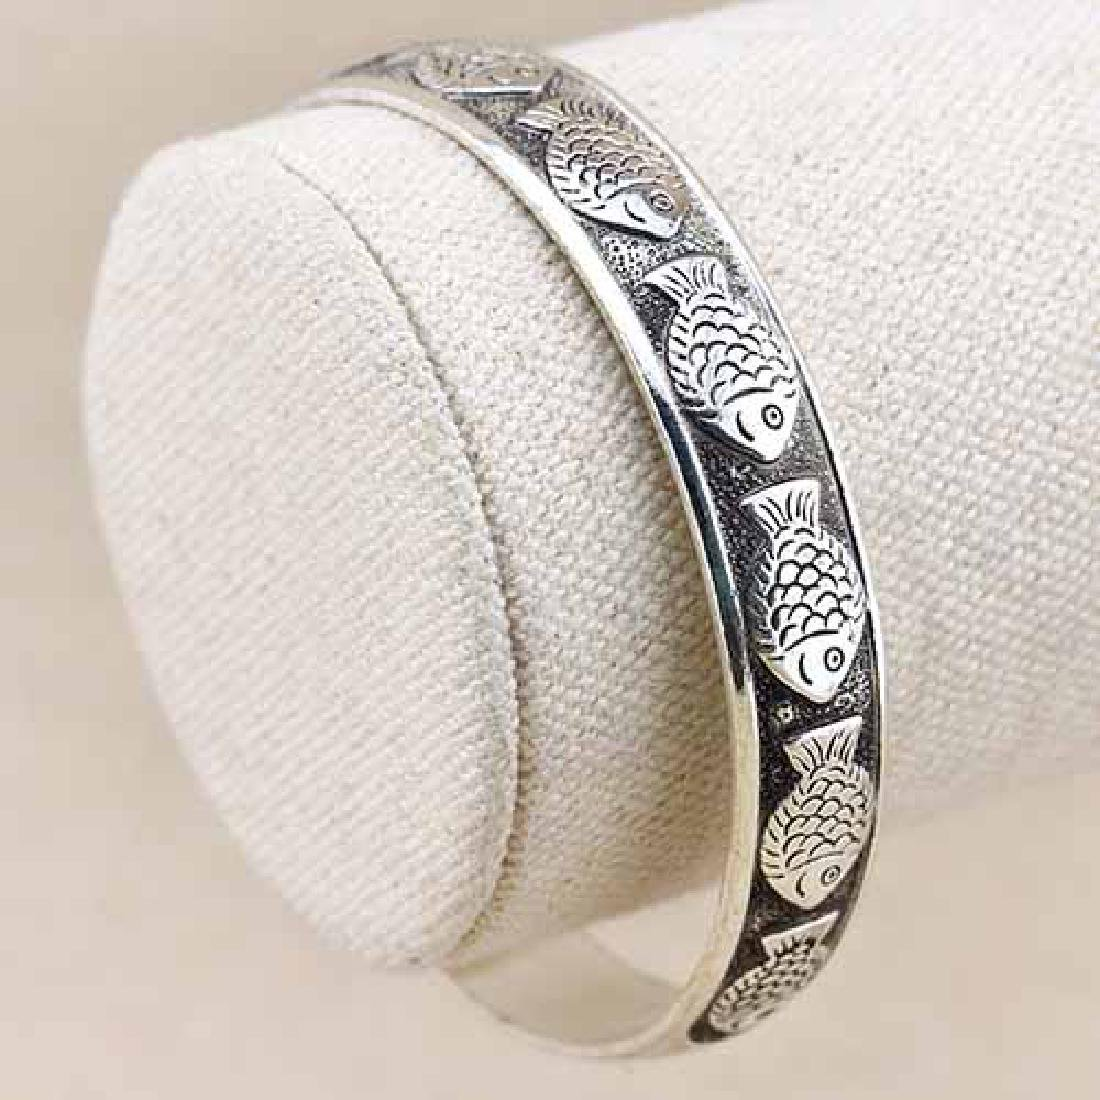 ANTIQUE SILVER ADJUSTABLE LUCKY FISH BANGLE